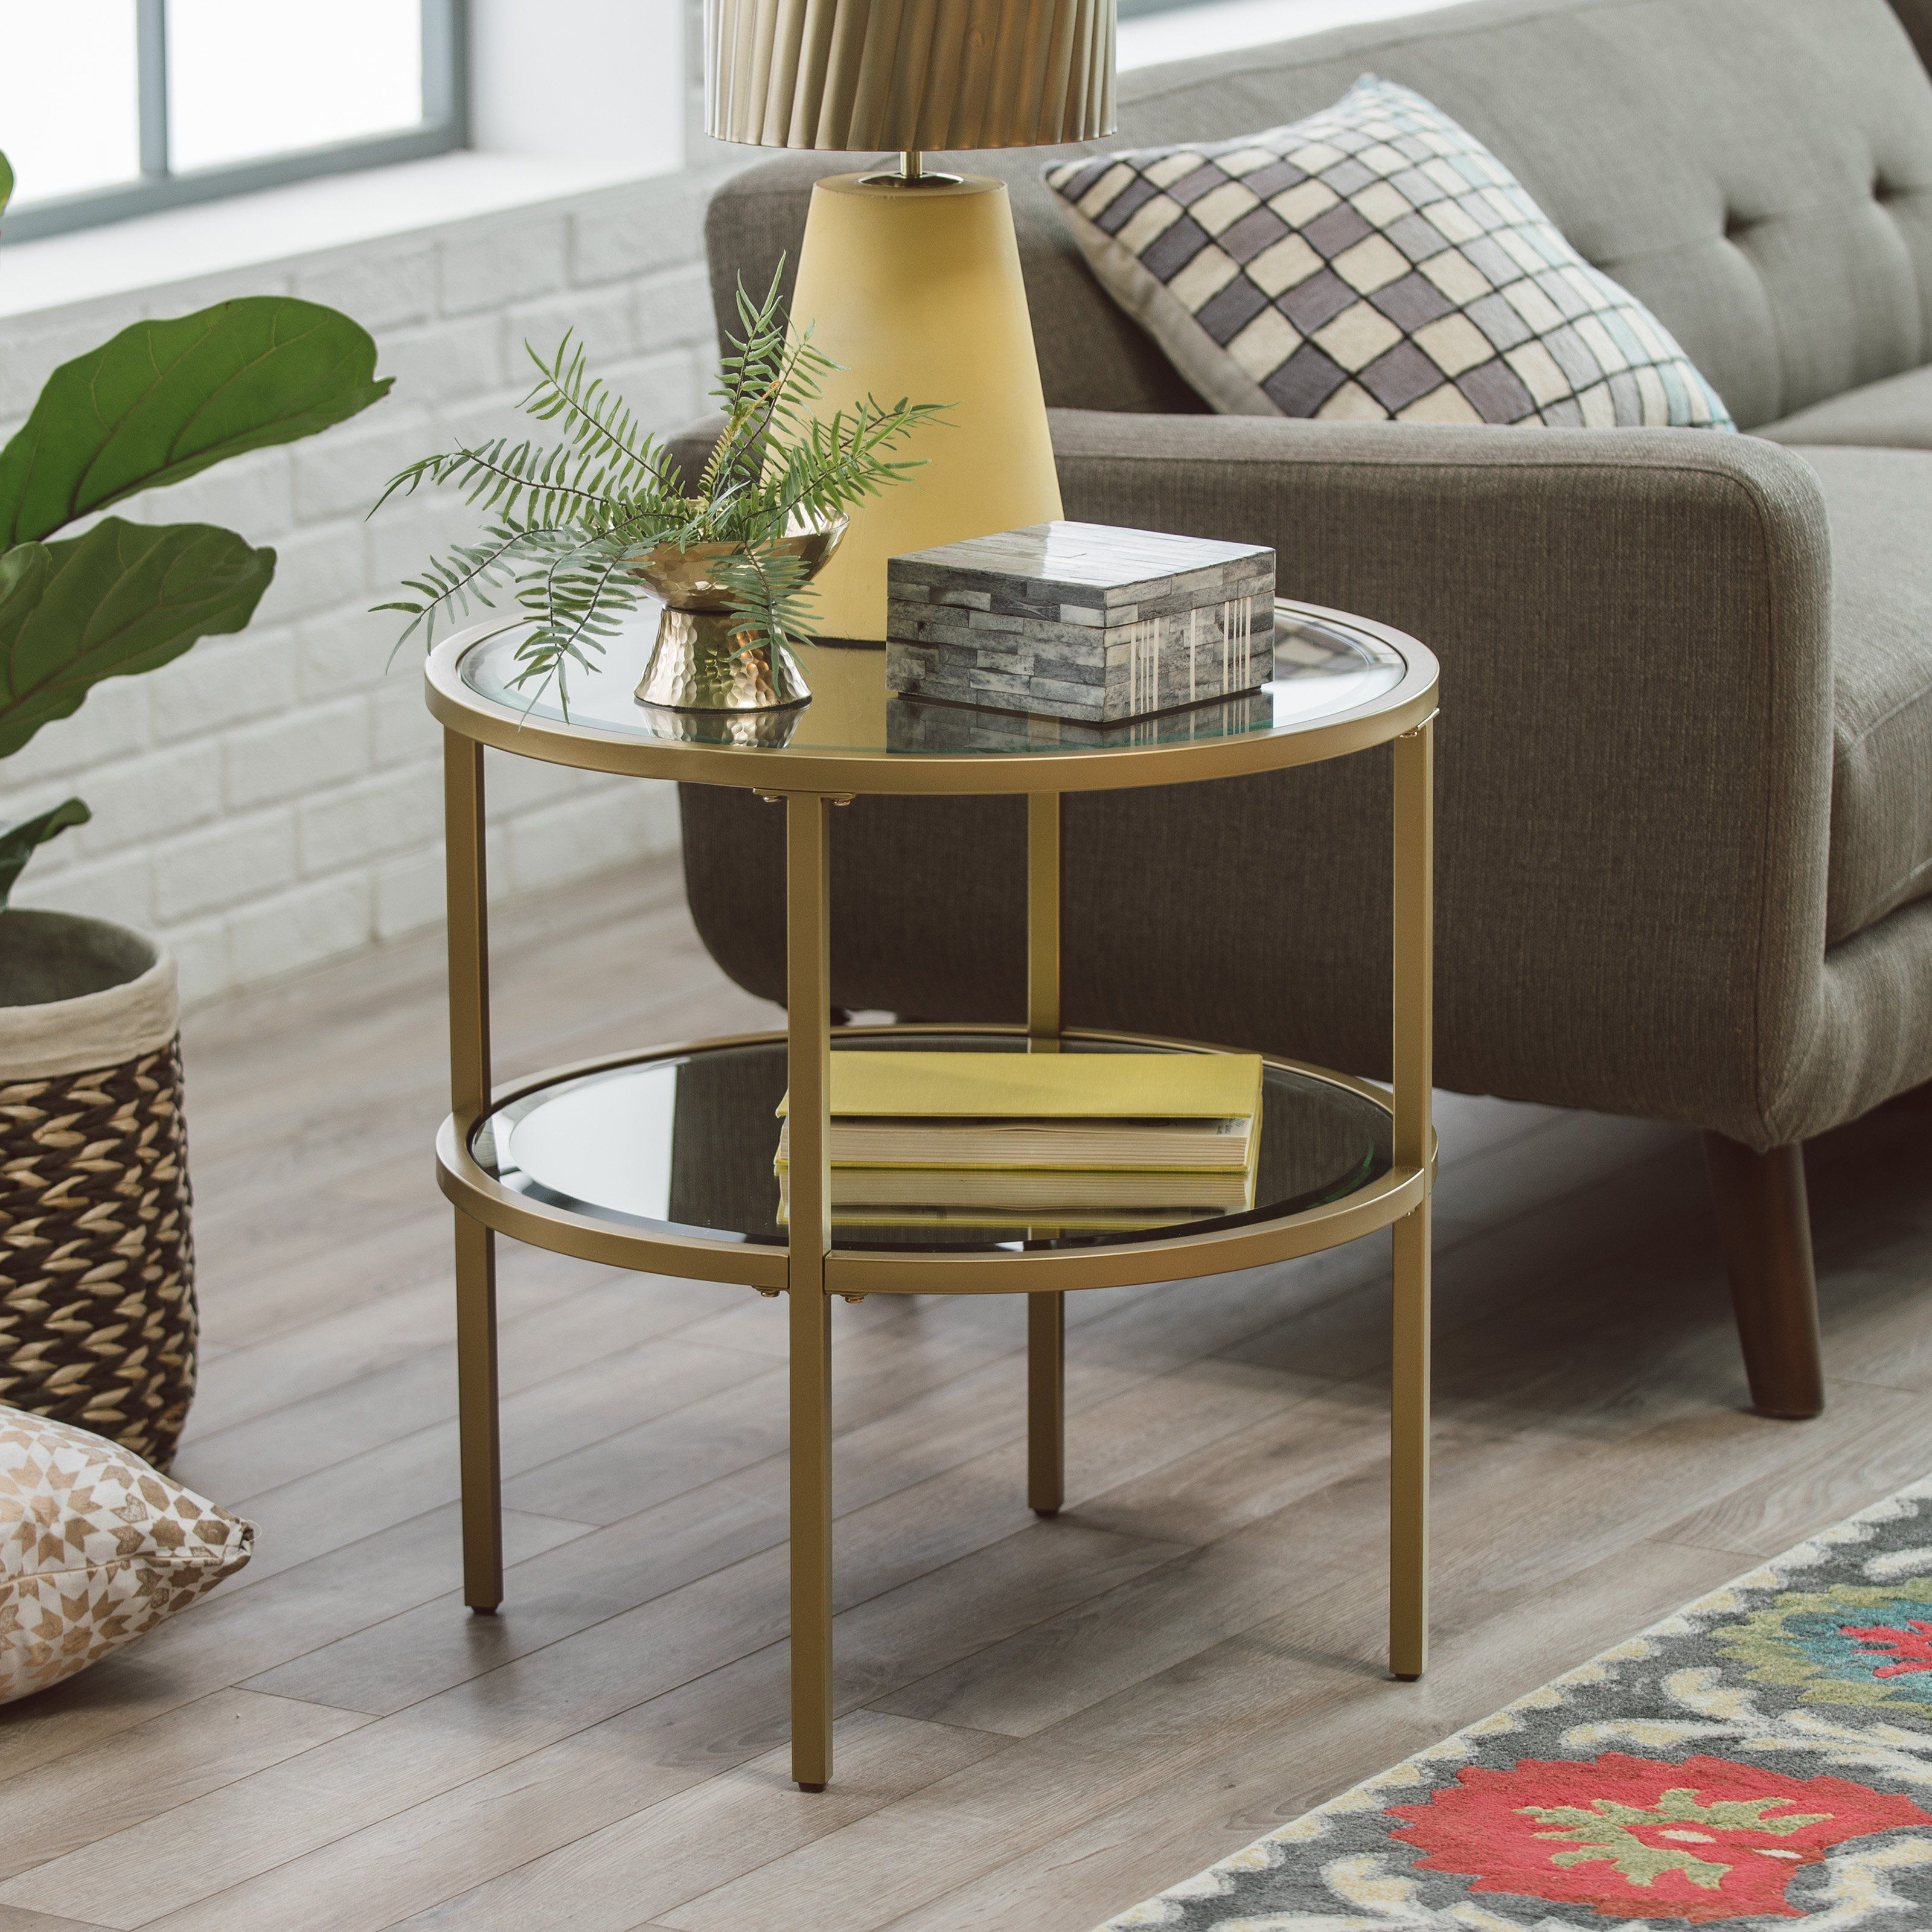 Belham Living Lamont Round End Table Gold From Hayneedle Com Living Room Side Table Living Room End Tables Table Decor Living Room